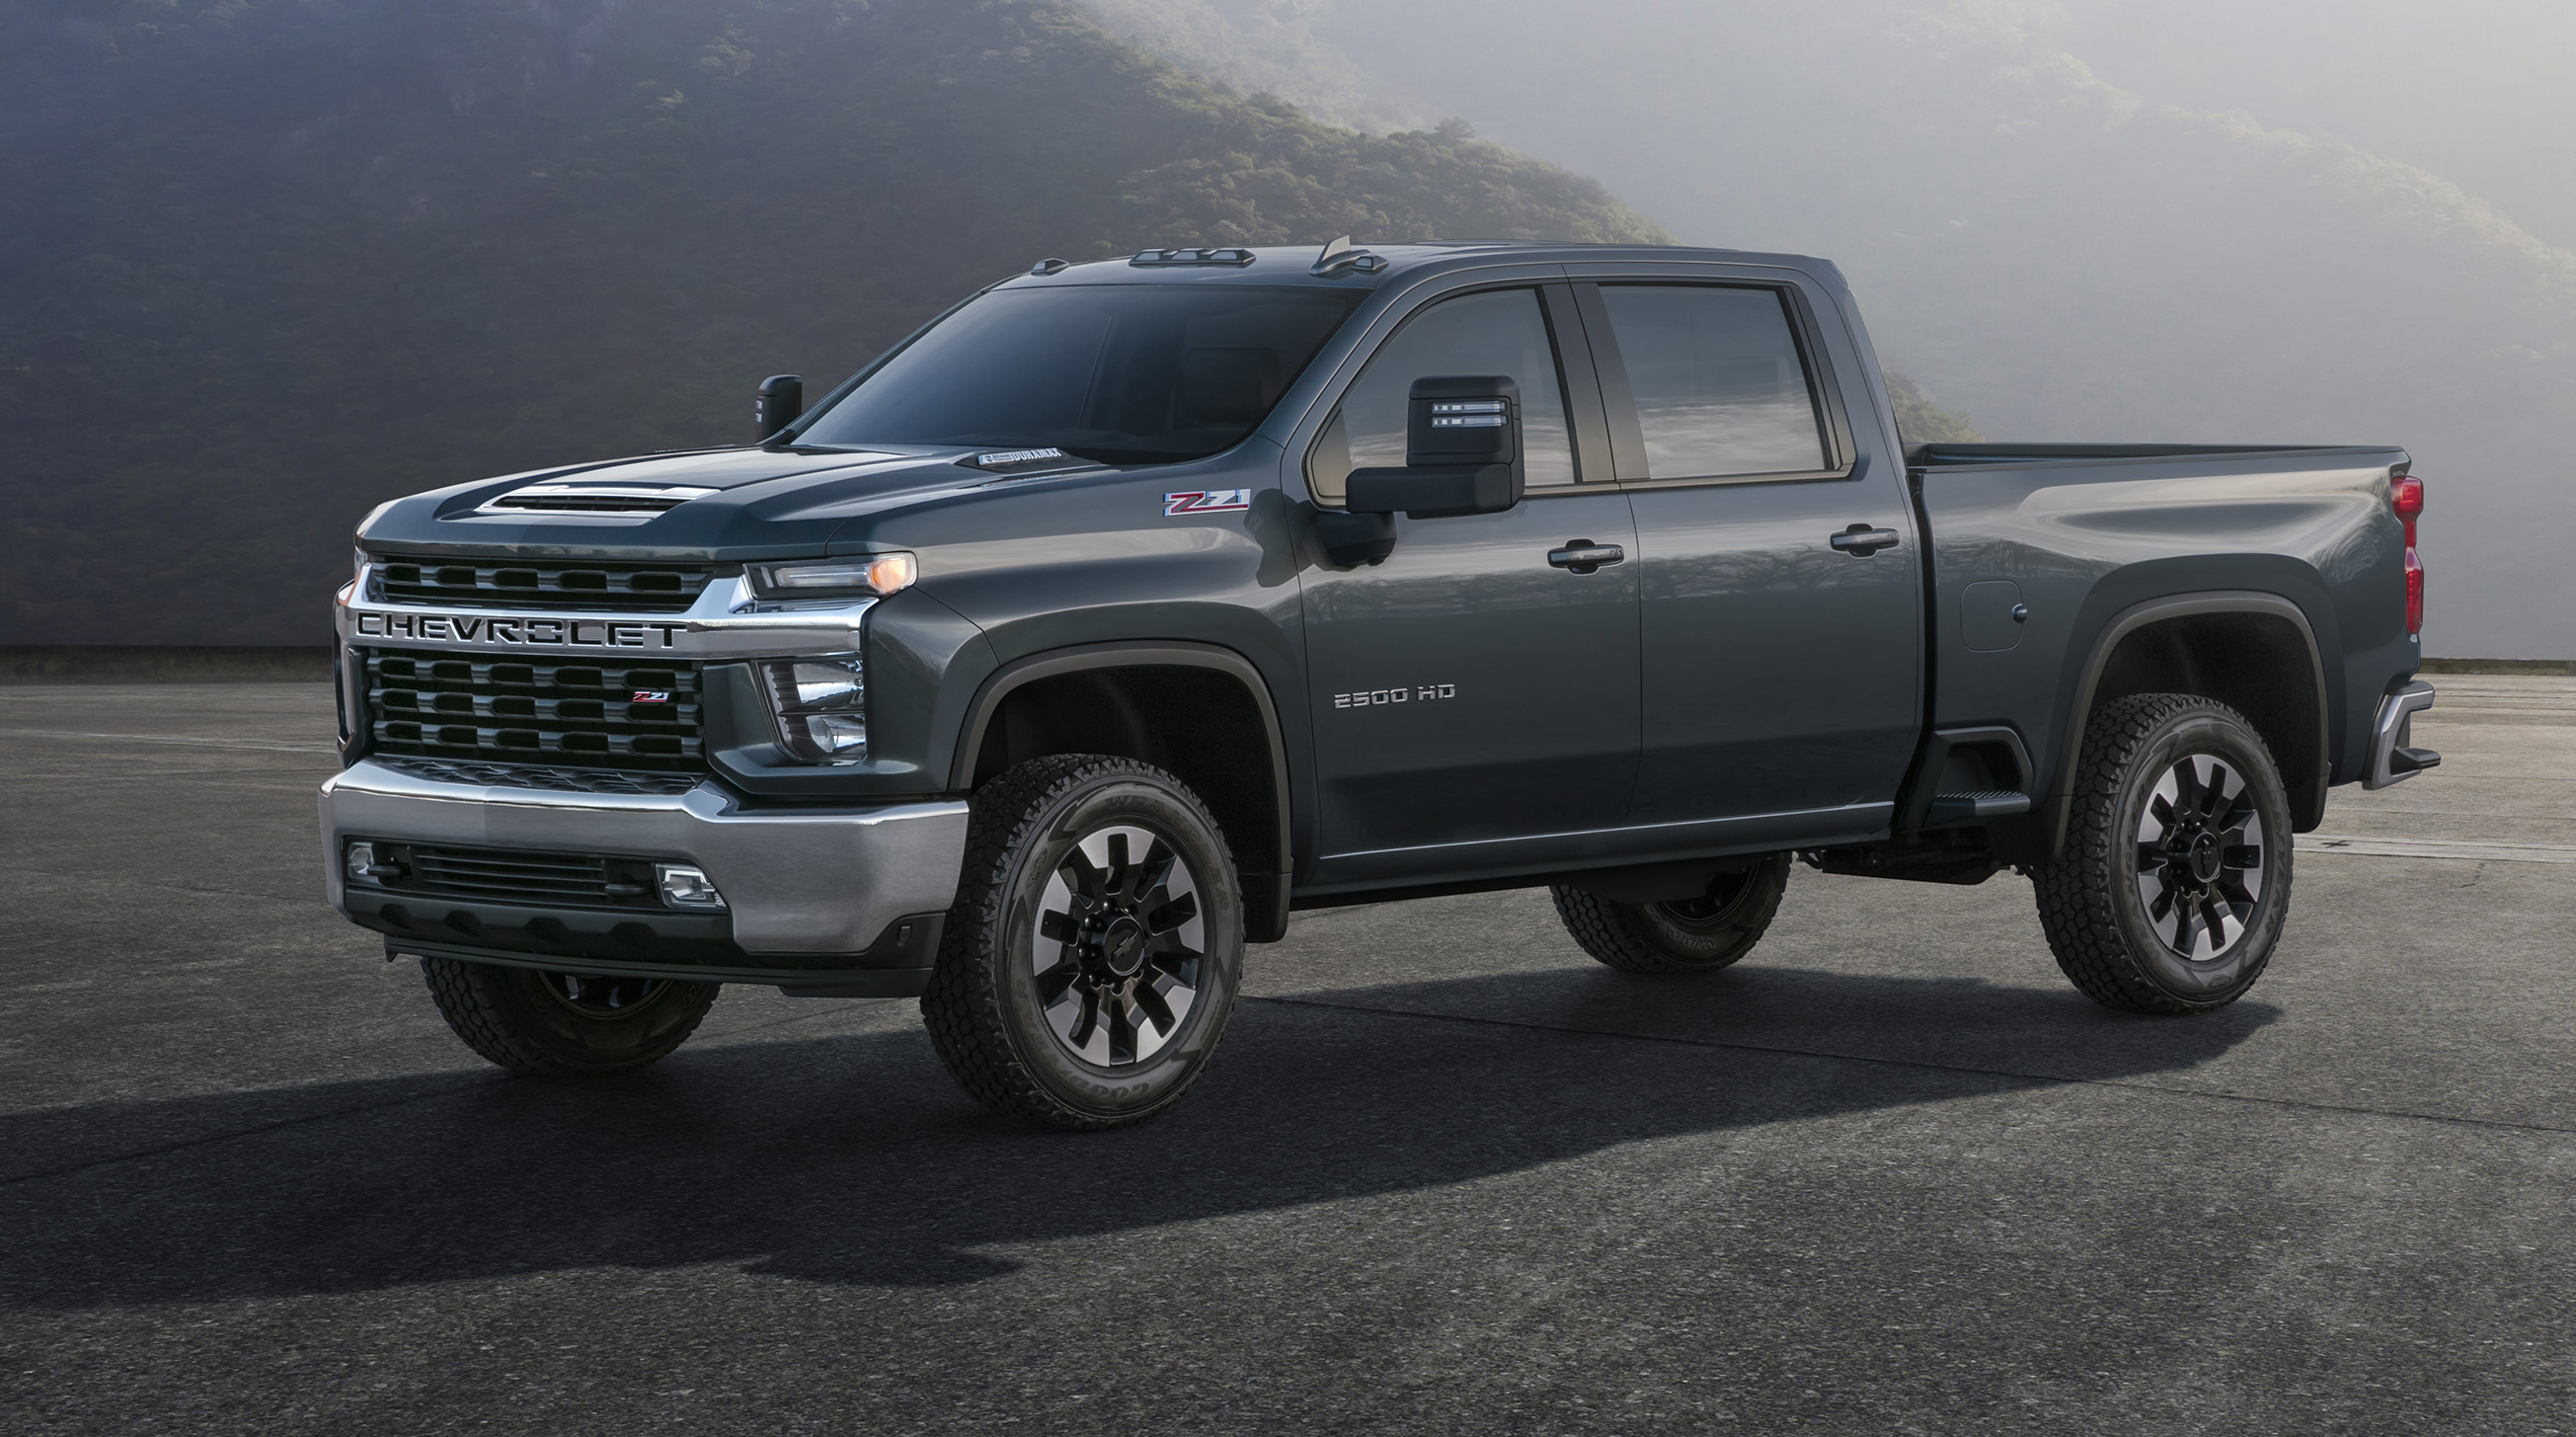 Most Capable Most Advanced Silverado Heavy Duty Ever To Debut In February 2019